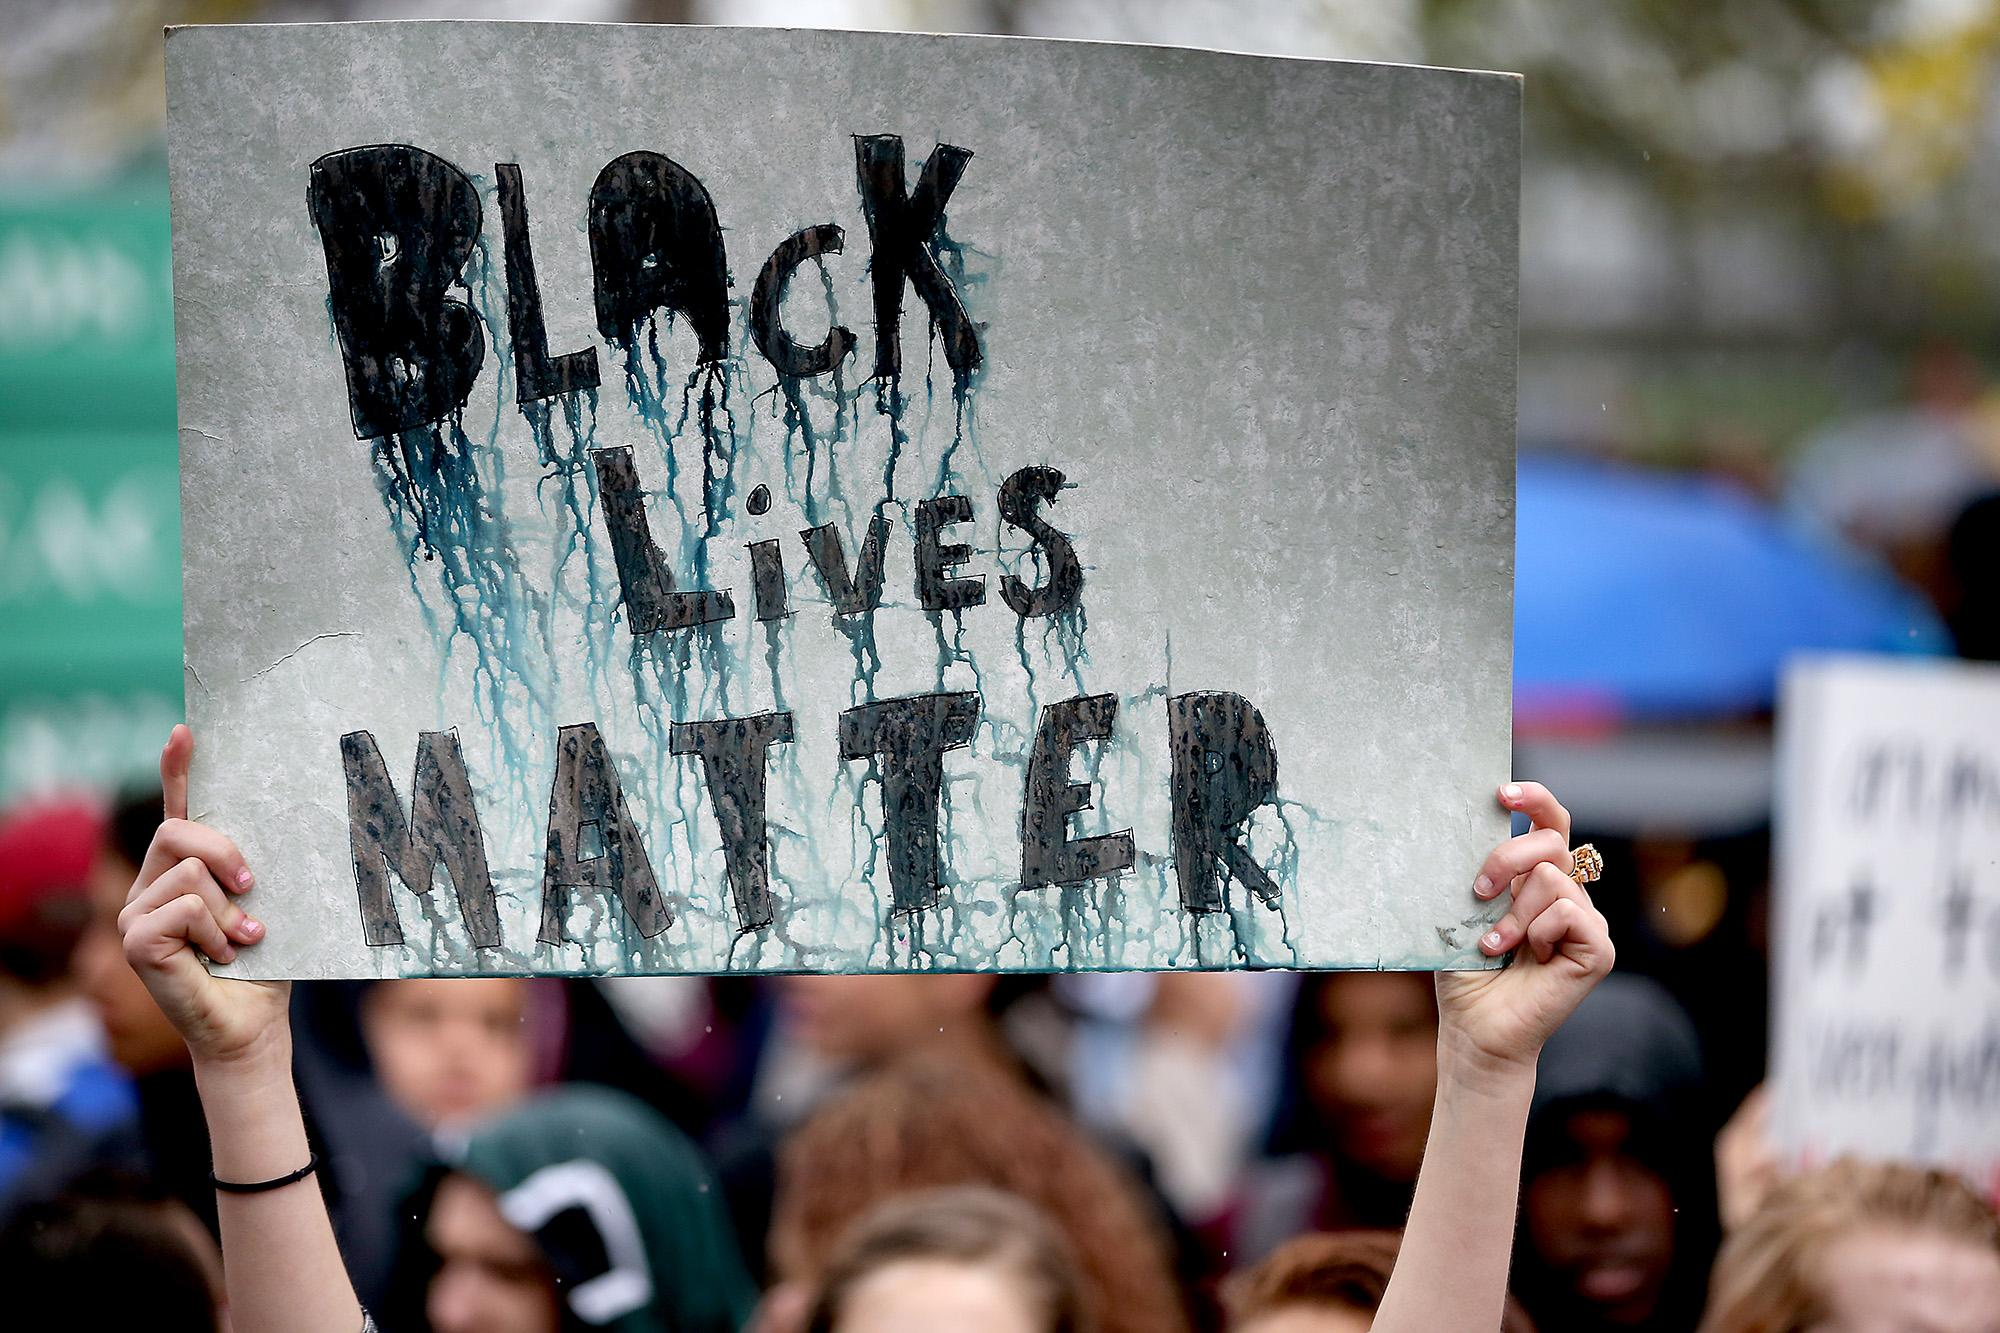 May Day demonstrators clash with police in Pacific Northwest